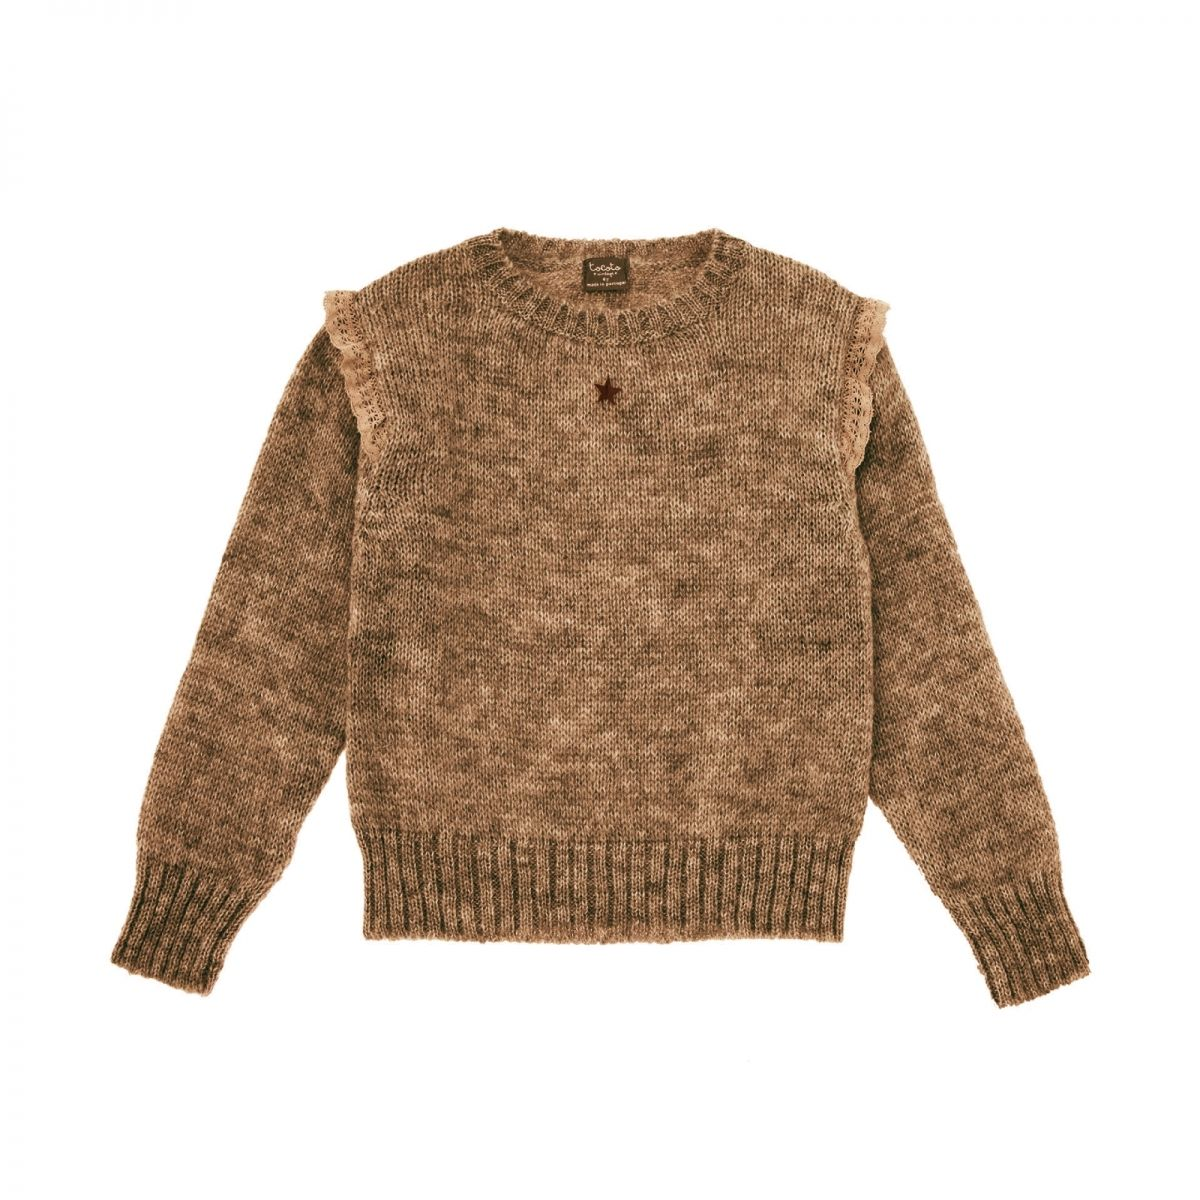 Tocoto Vintage - Sweter knitted brązowy - 1